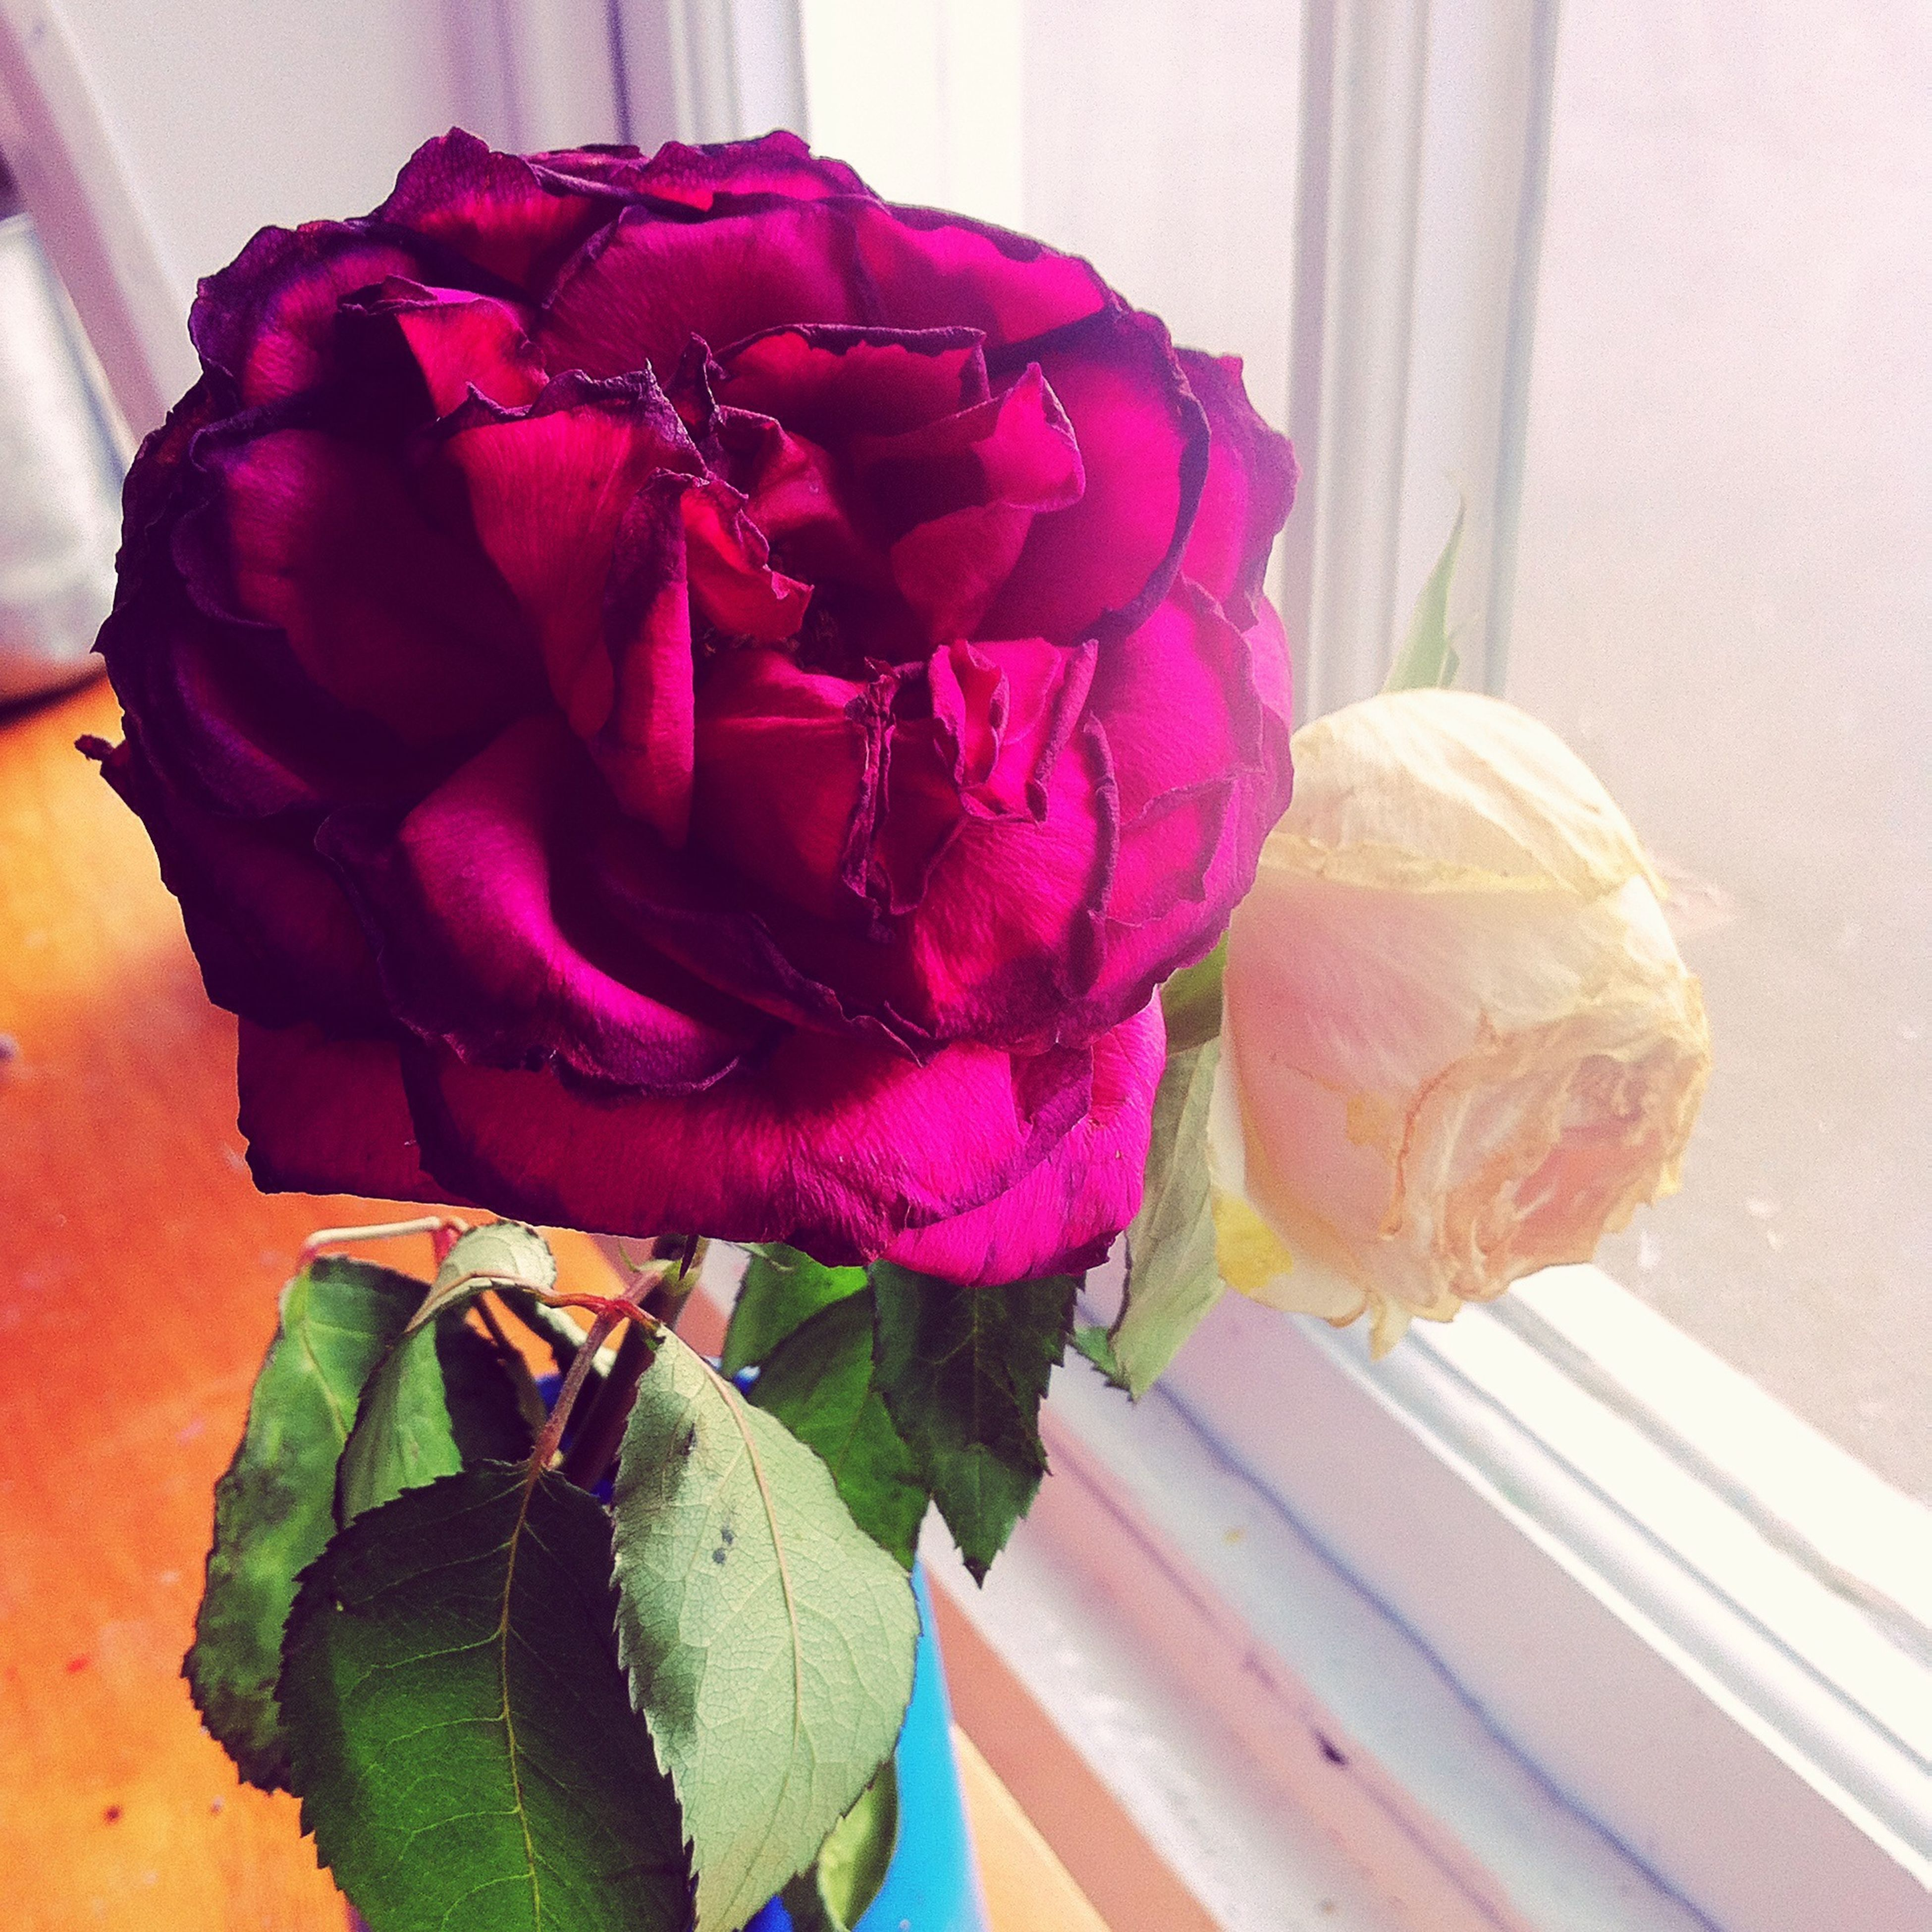 flower, petal, flower head, rose - flower, fragility, freshness, indoors, close-up, beauty in nature, rose, nature, single flower, pink color, plant, growth, table, vase, no people, wood - material, wall - building feature